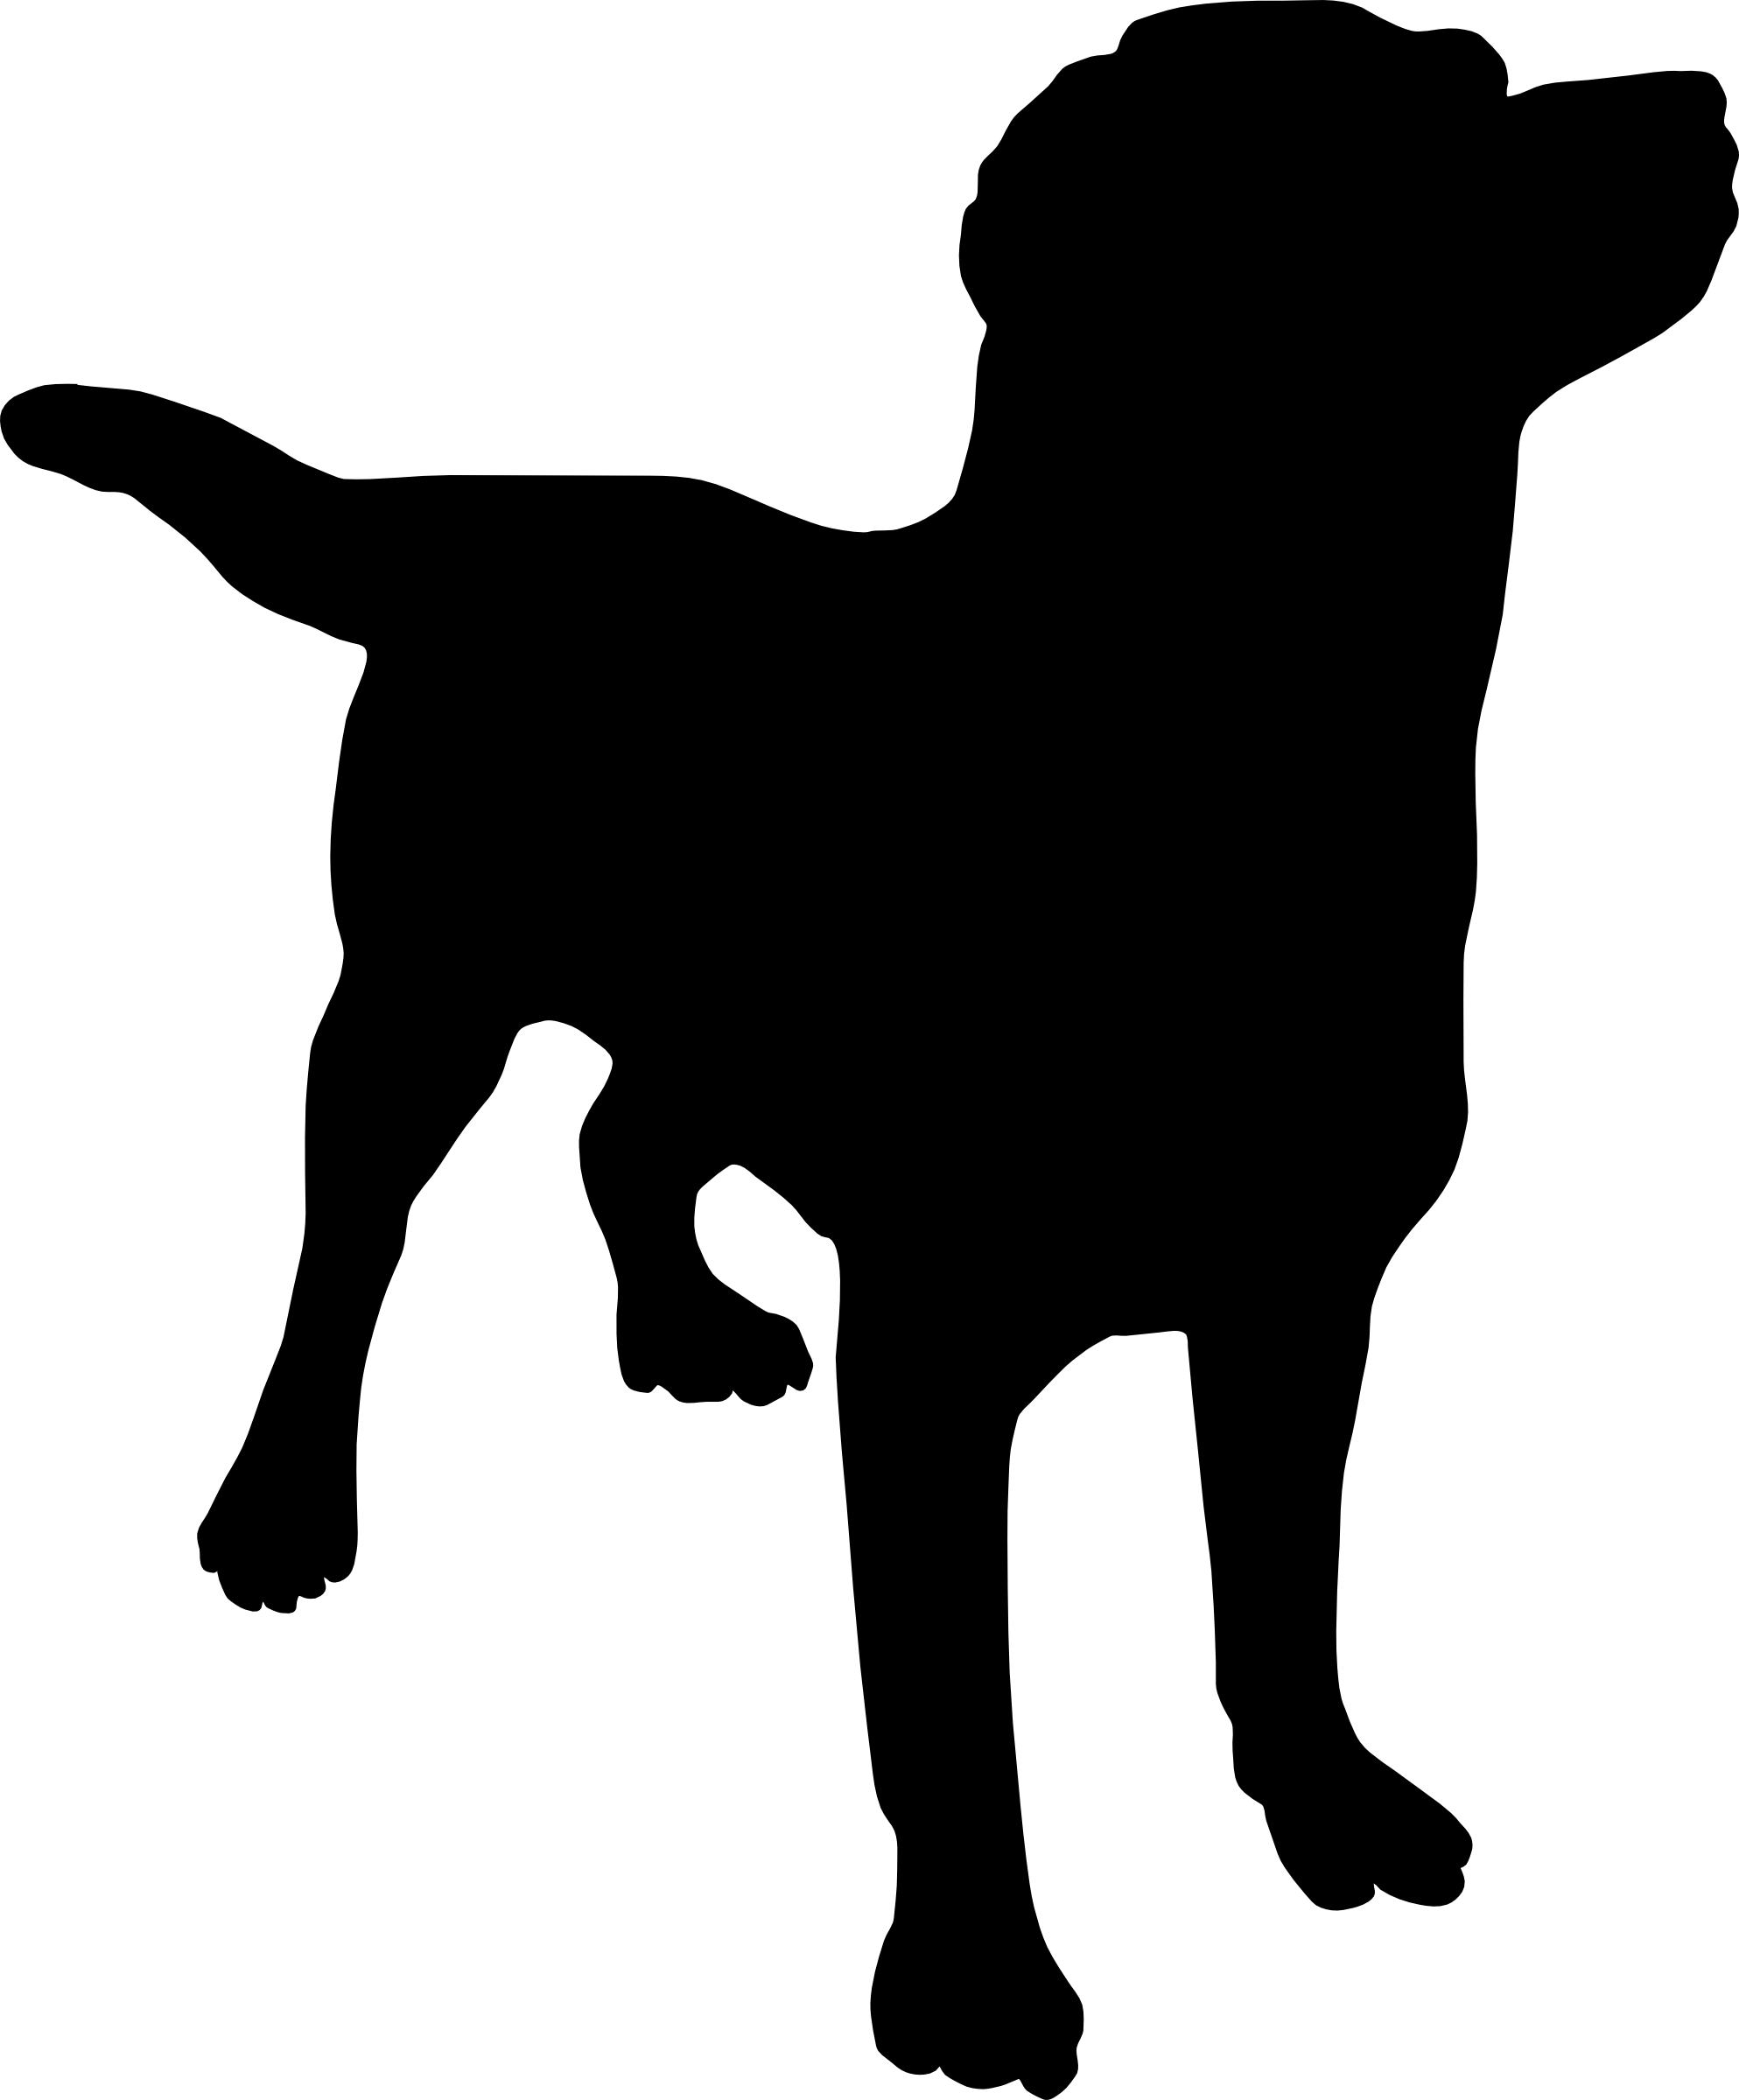 Pet clipart farm dog. Free silhouette clip art